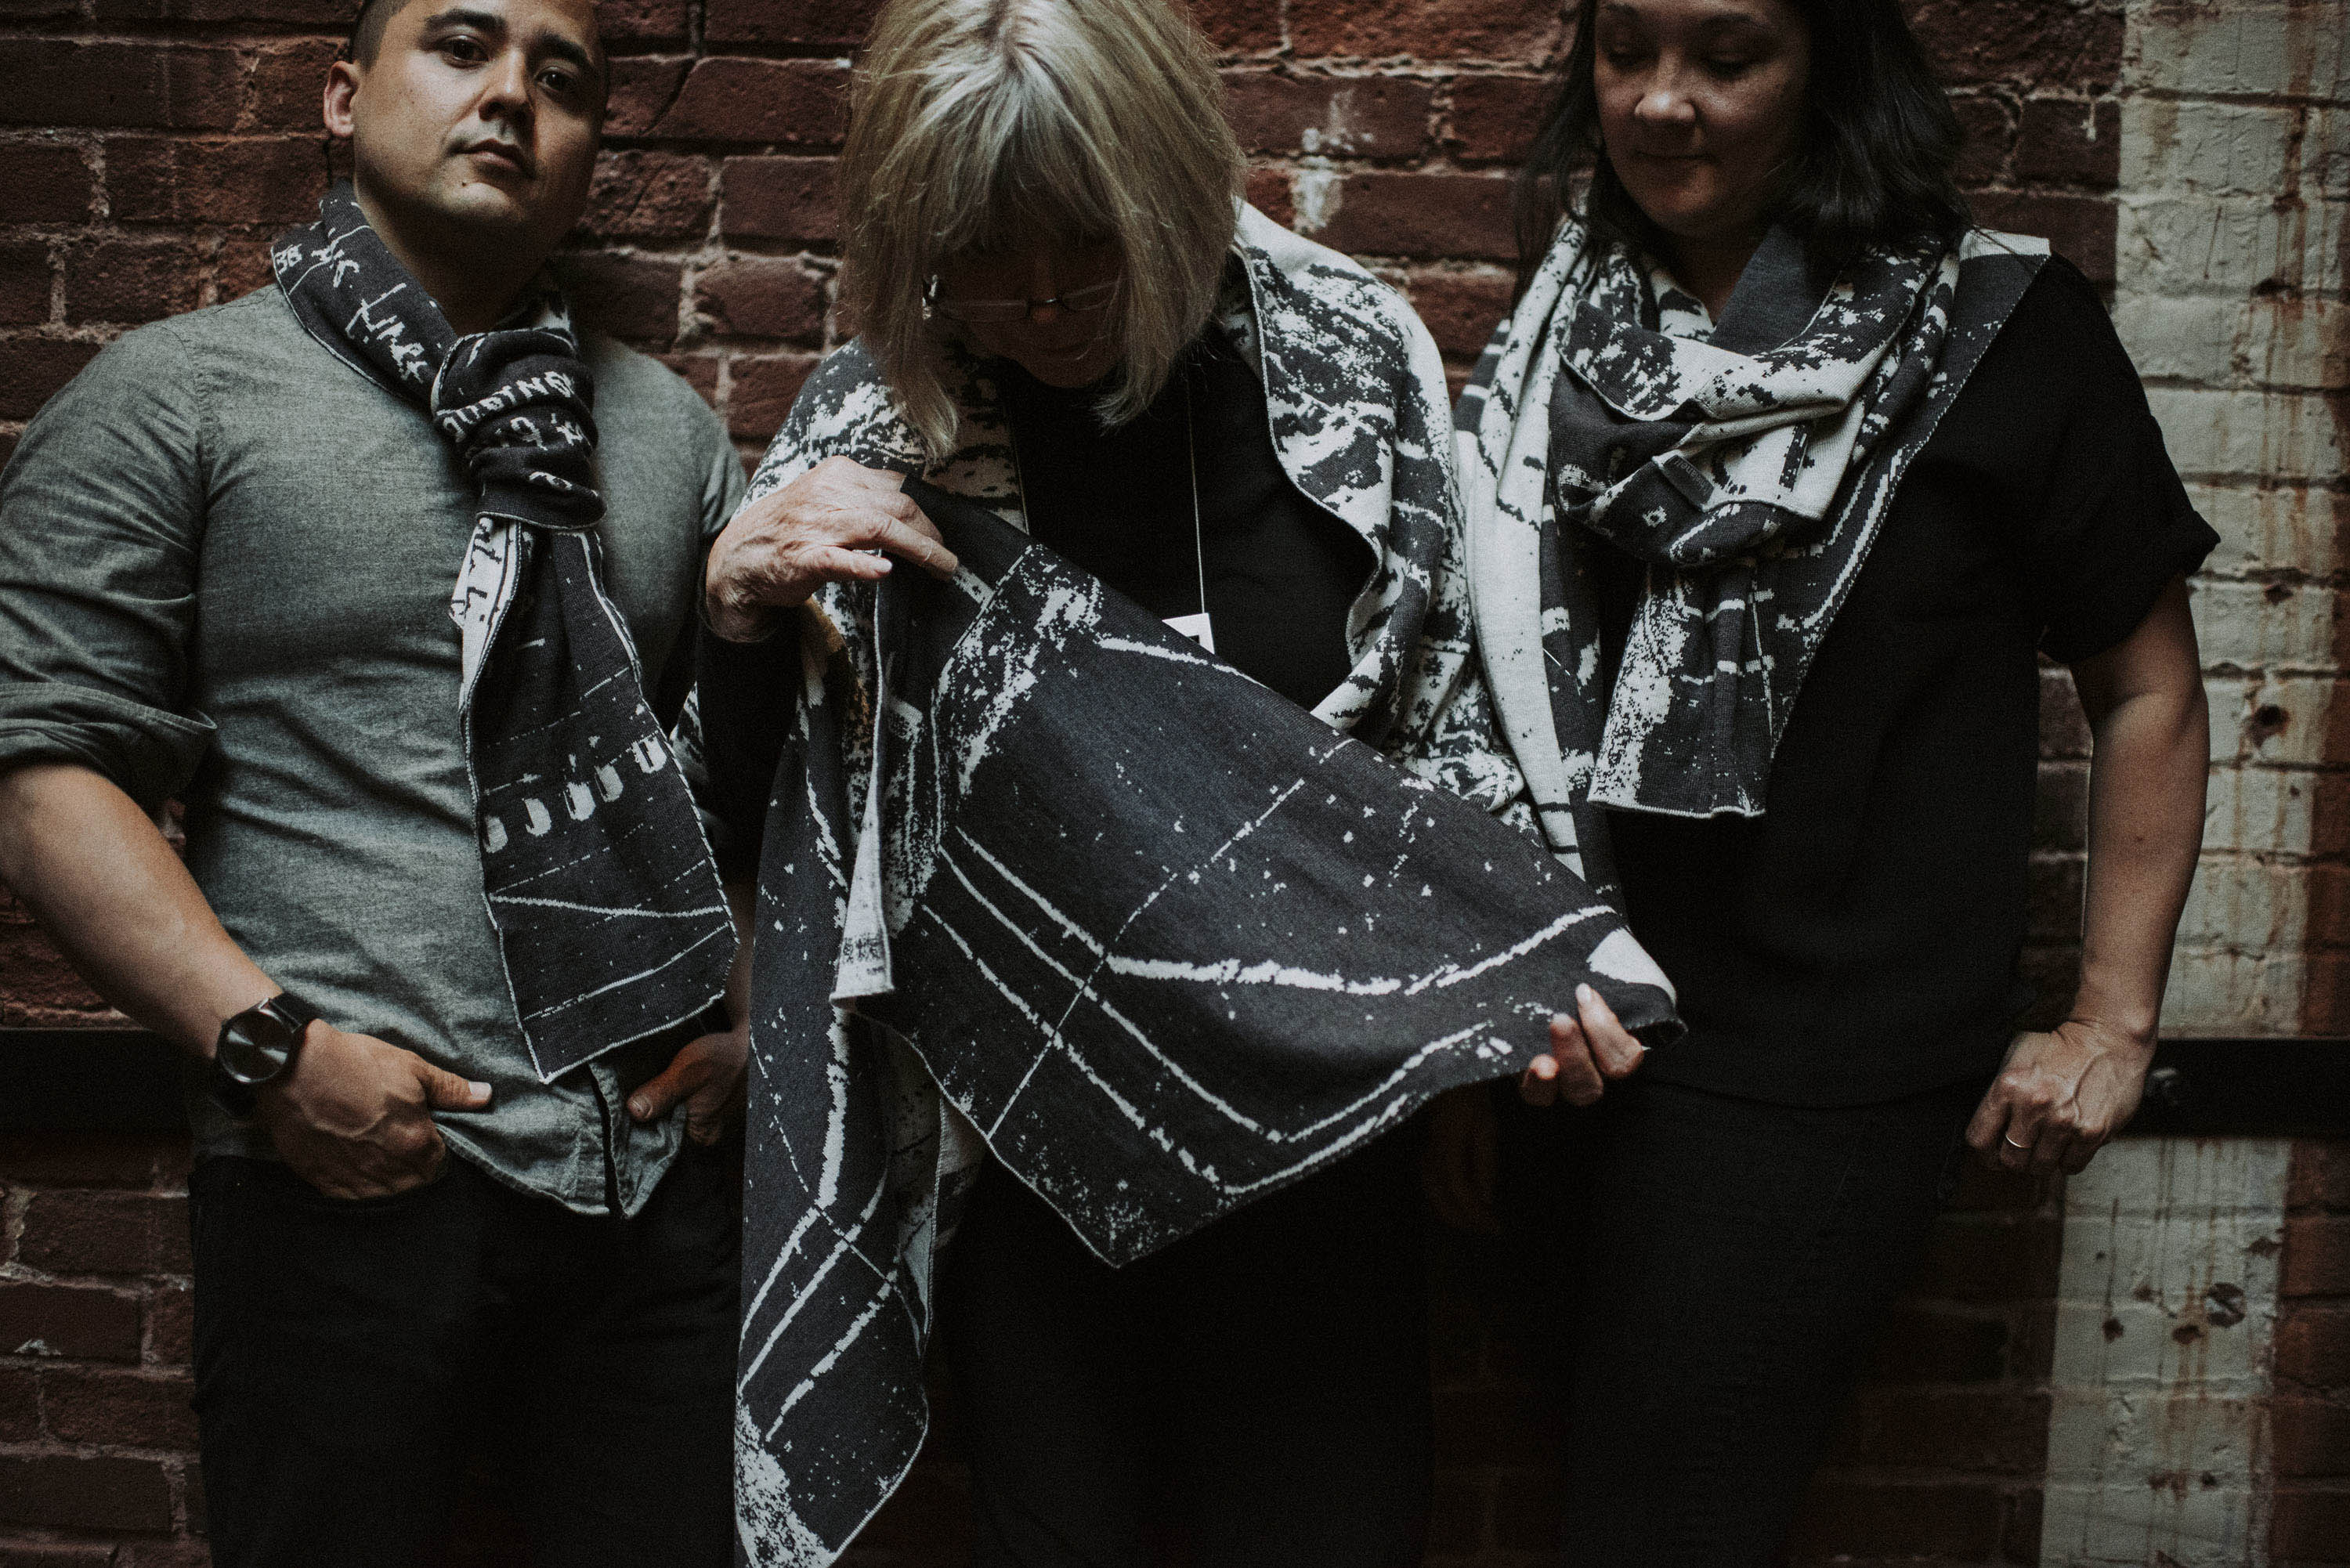 A man and two women wearing pieces from the Nielanell Byre collection of contemporary Shetland knitwear. Charcoal and stone white yarn with abstract motifs and some lettering knitted into the pattern.